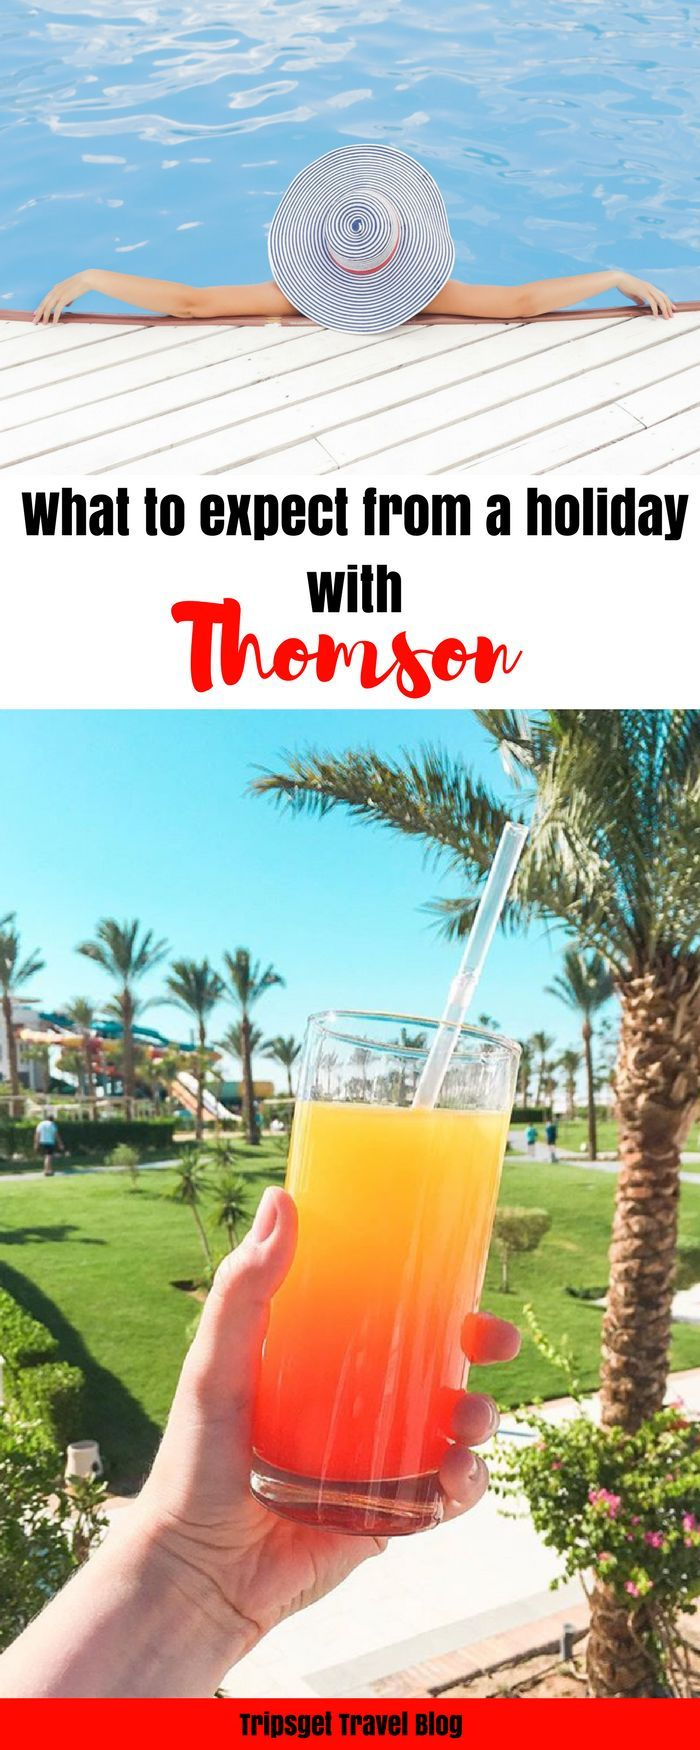 What to expect from an all-inclusive holiday with Thomson Holidays / Tui - all-inclusive holidays in the UK